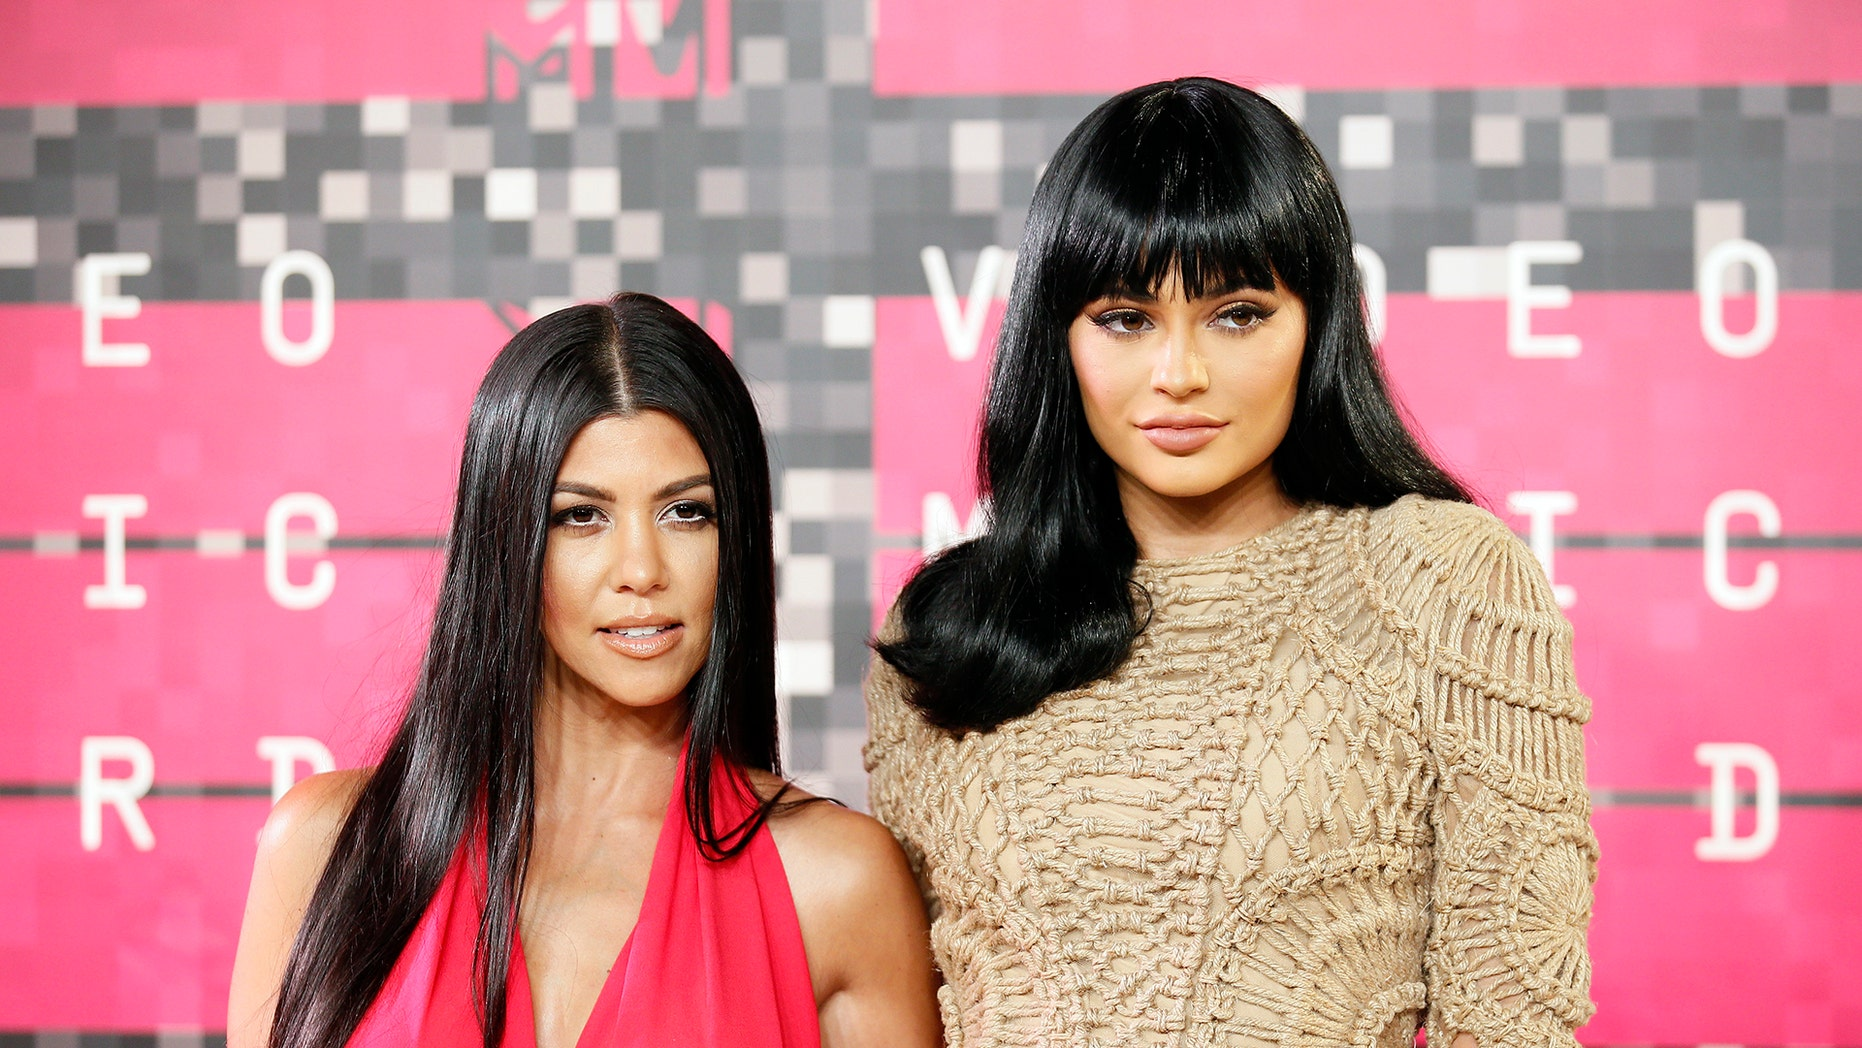 Reality television stars Kourtney Kardashian and Kylie Jenner arrive at the 2015 MTV Video Music Awards in Los Angeles, California, August 30, 2015.